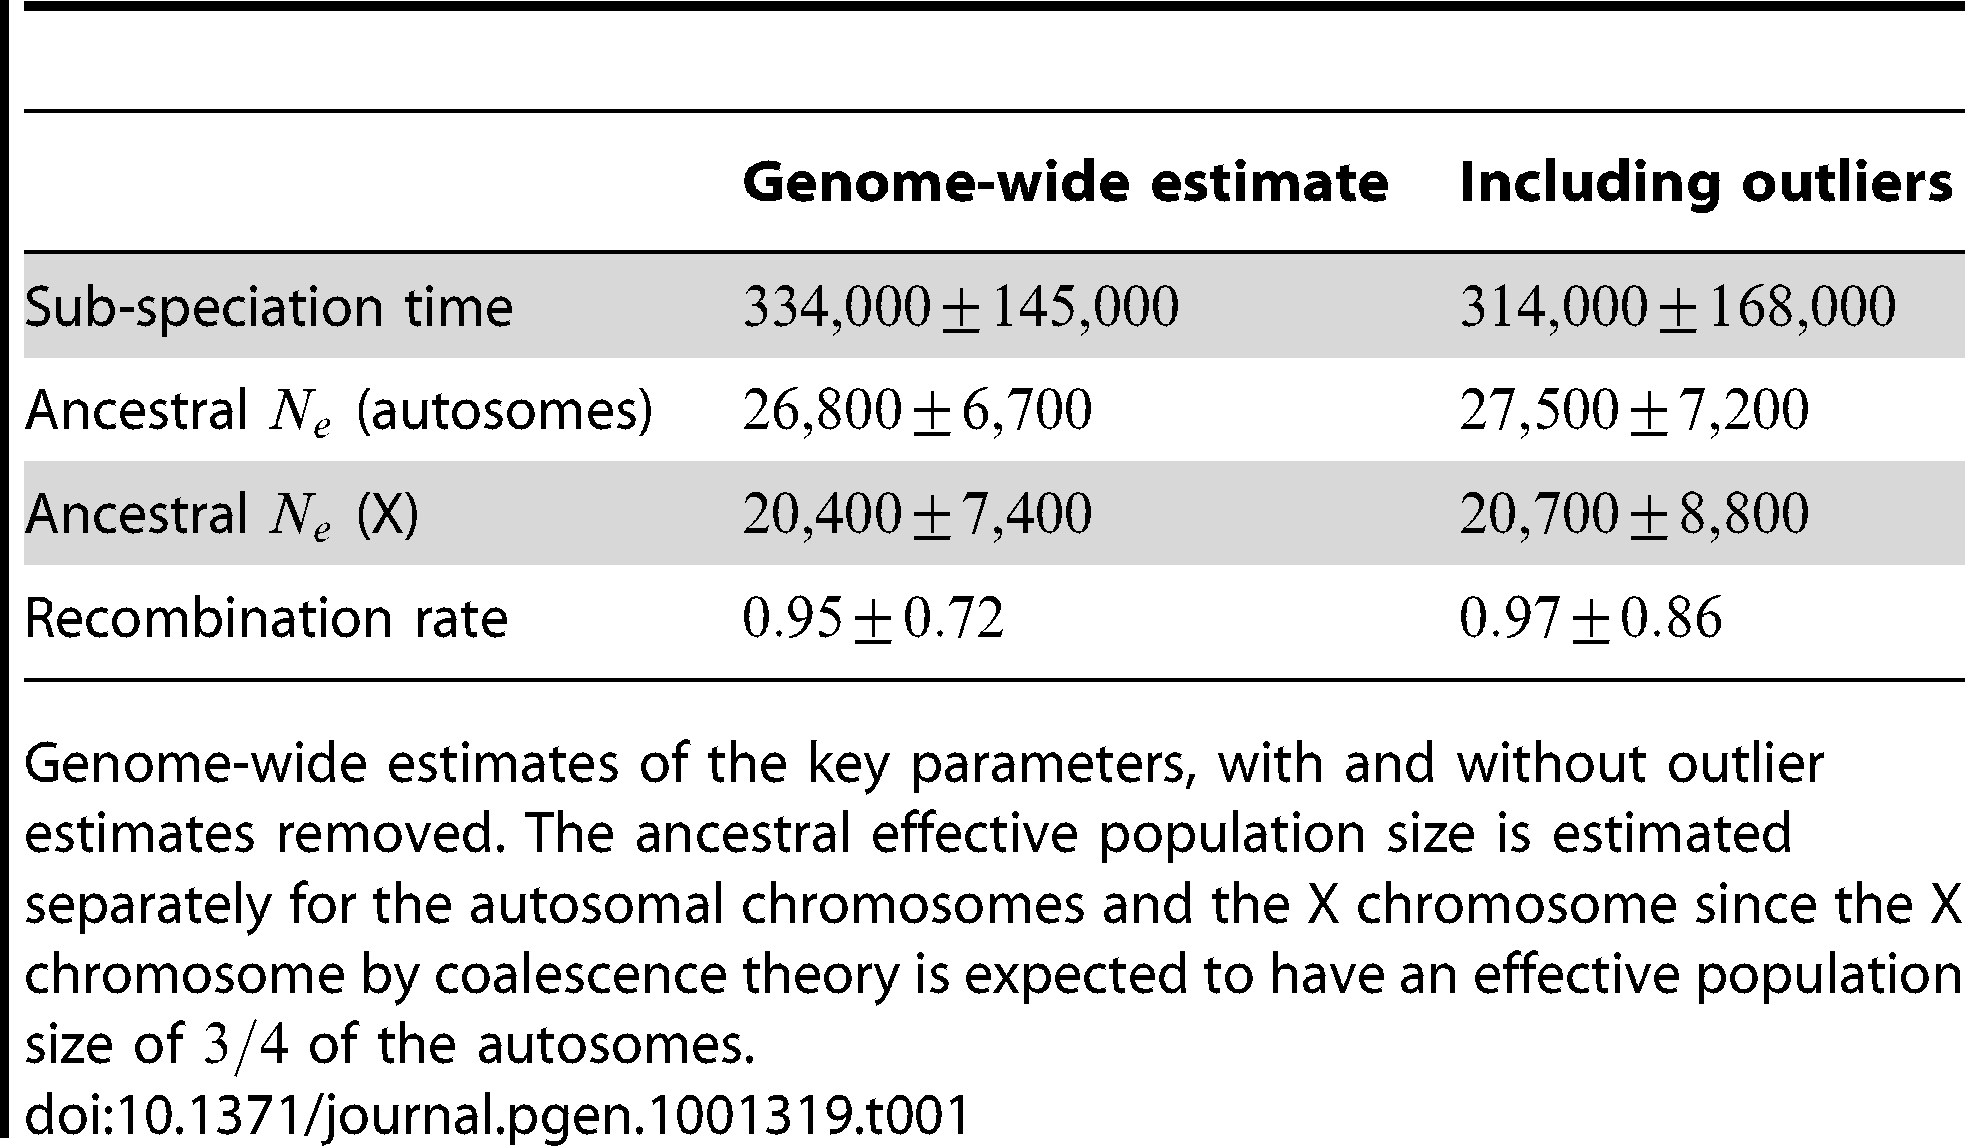 Genome-wide parameter estimates.